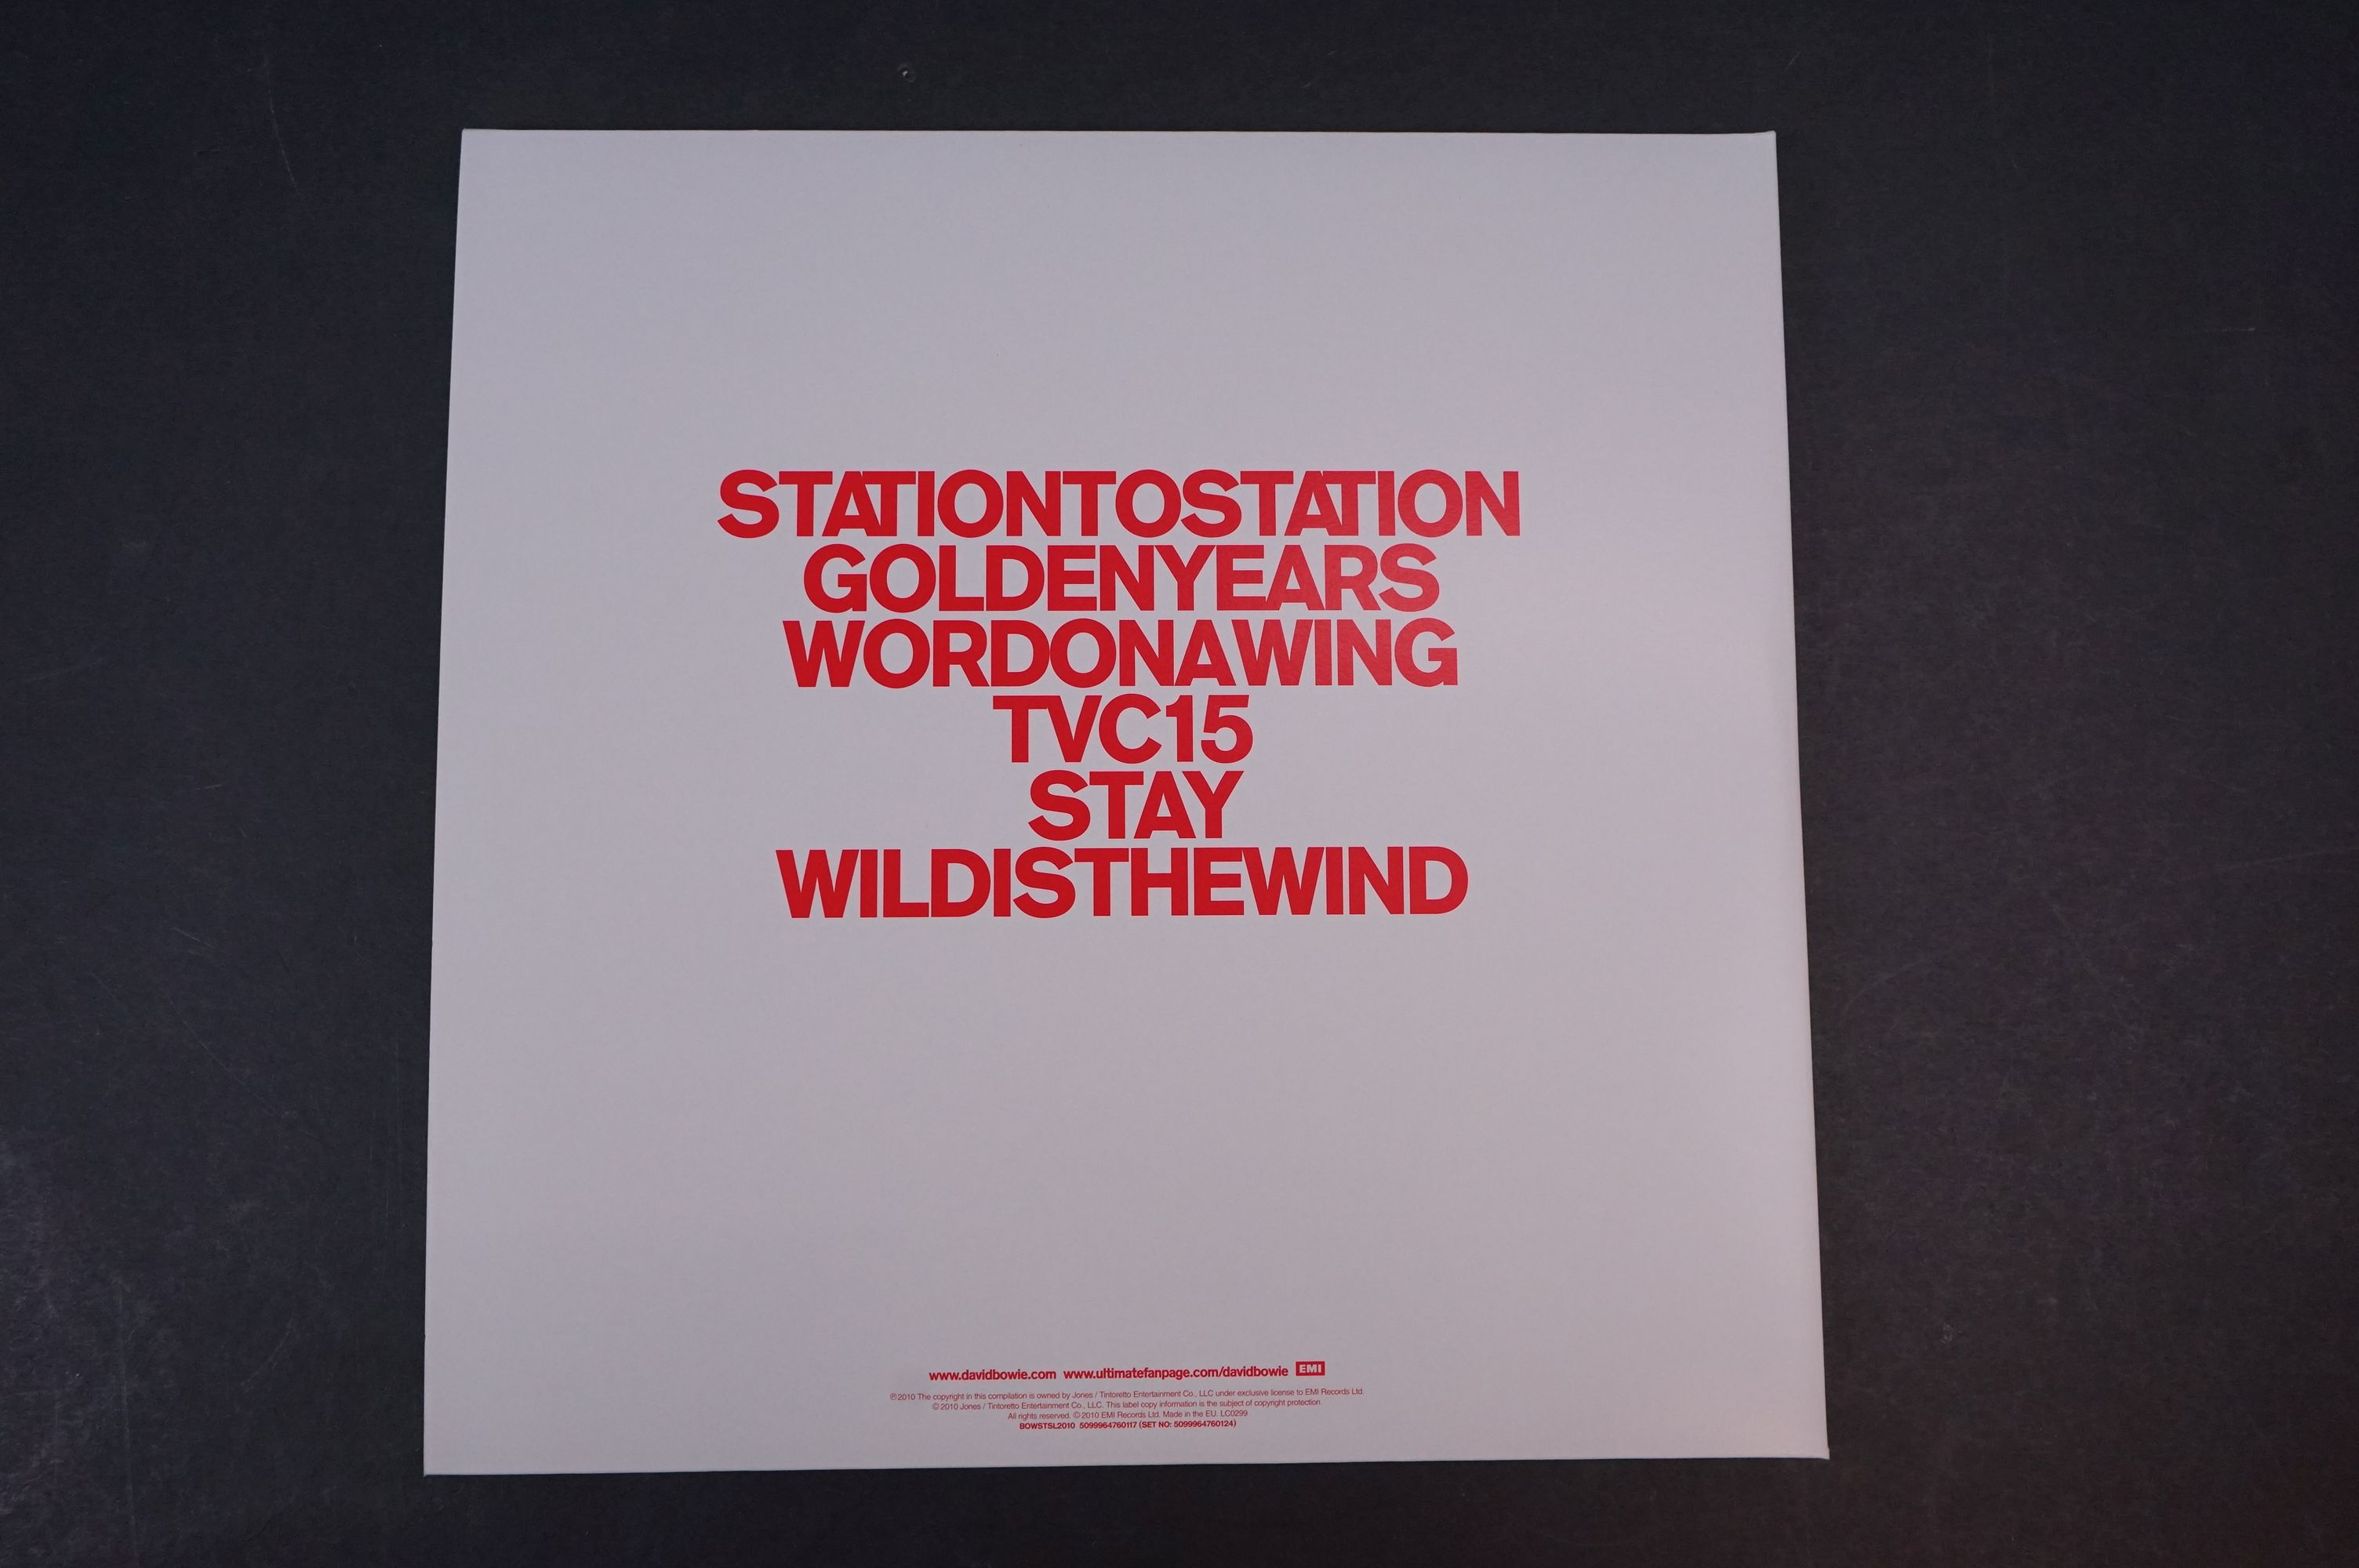 Vinyl / CD / DVD - David Bowie Station To Station Deluxe Box Set, vg - Image 9 of 15